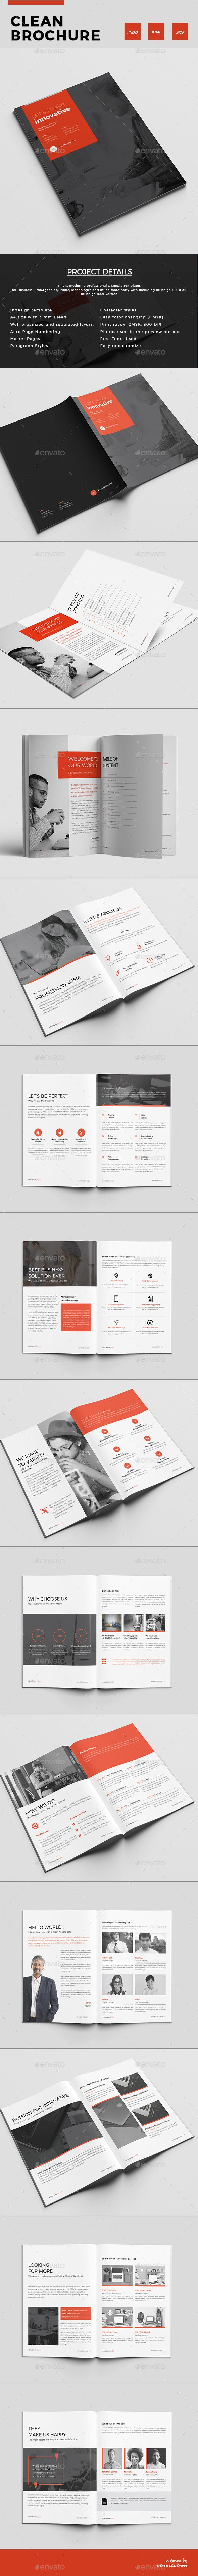 Brochure — InDesign INDD #company #professional • Download ➝ https://graphicriver.net/item/brochure/19445964?ref=pxcr